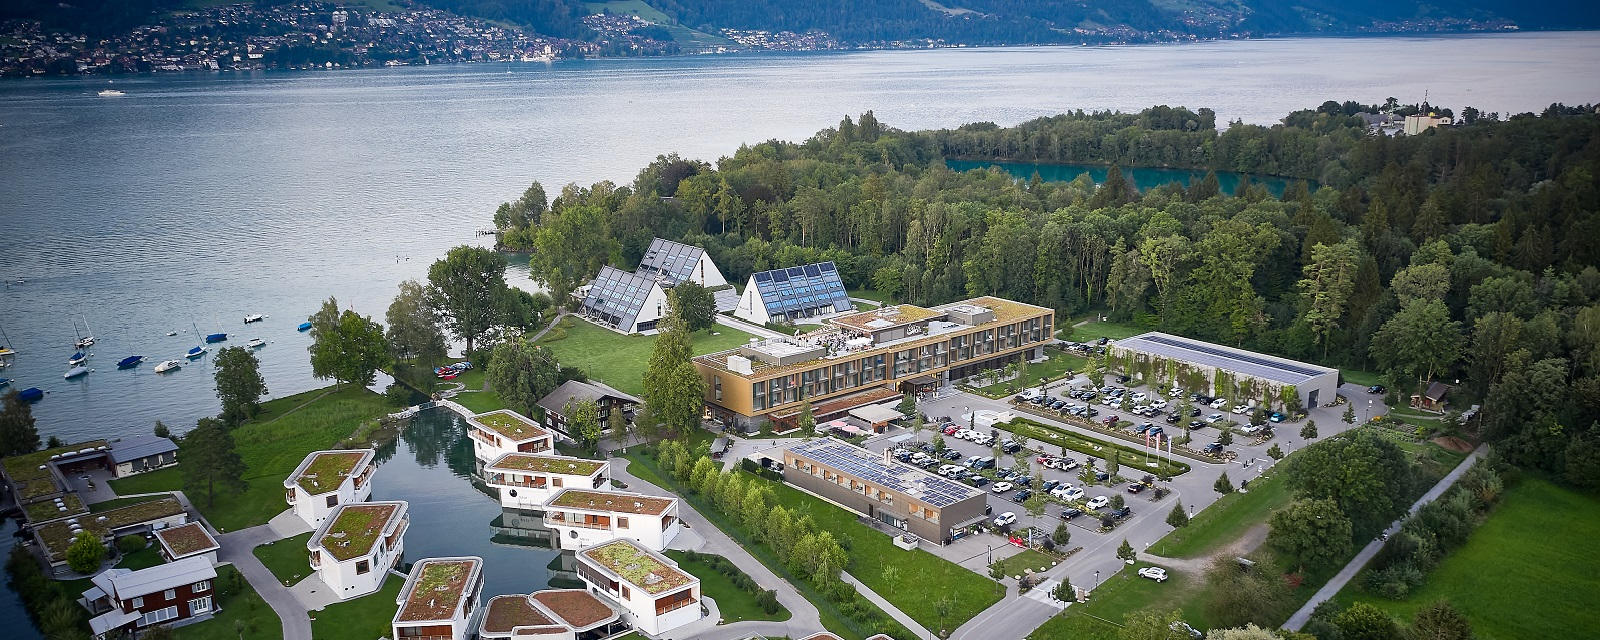 Das Deltapark Resort am Thunersee